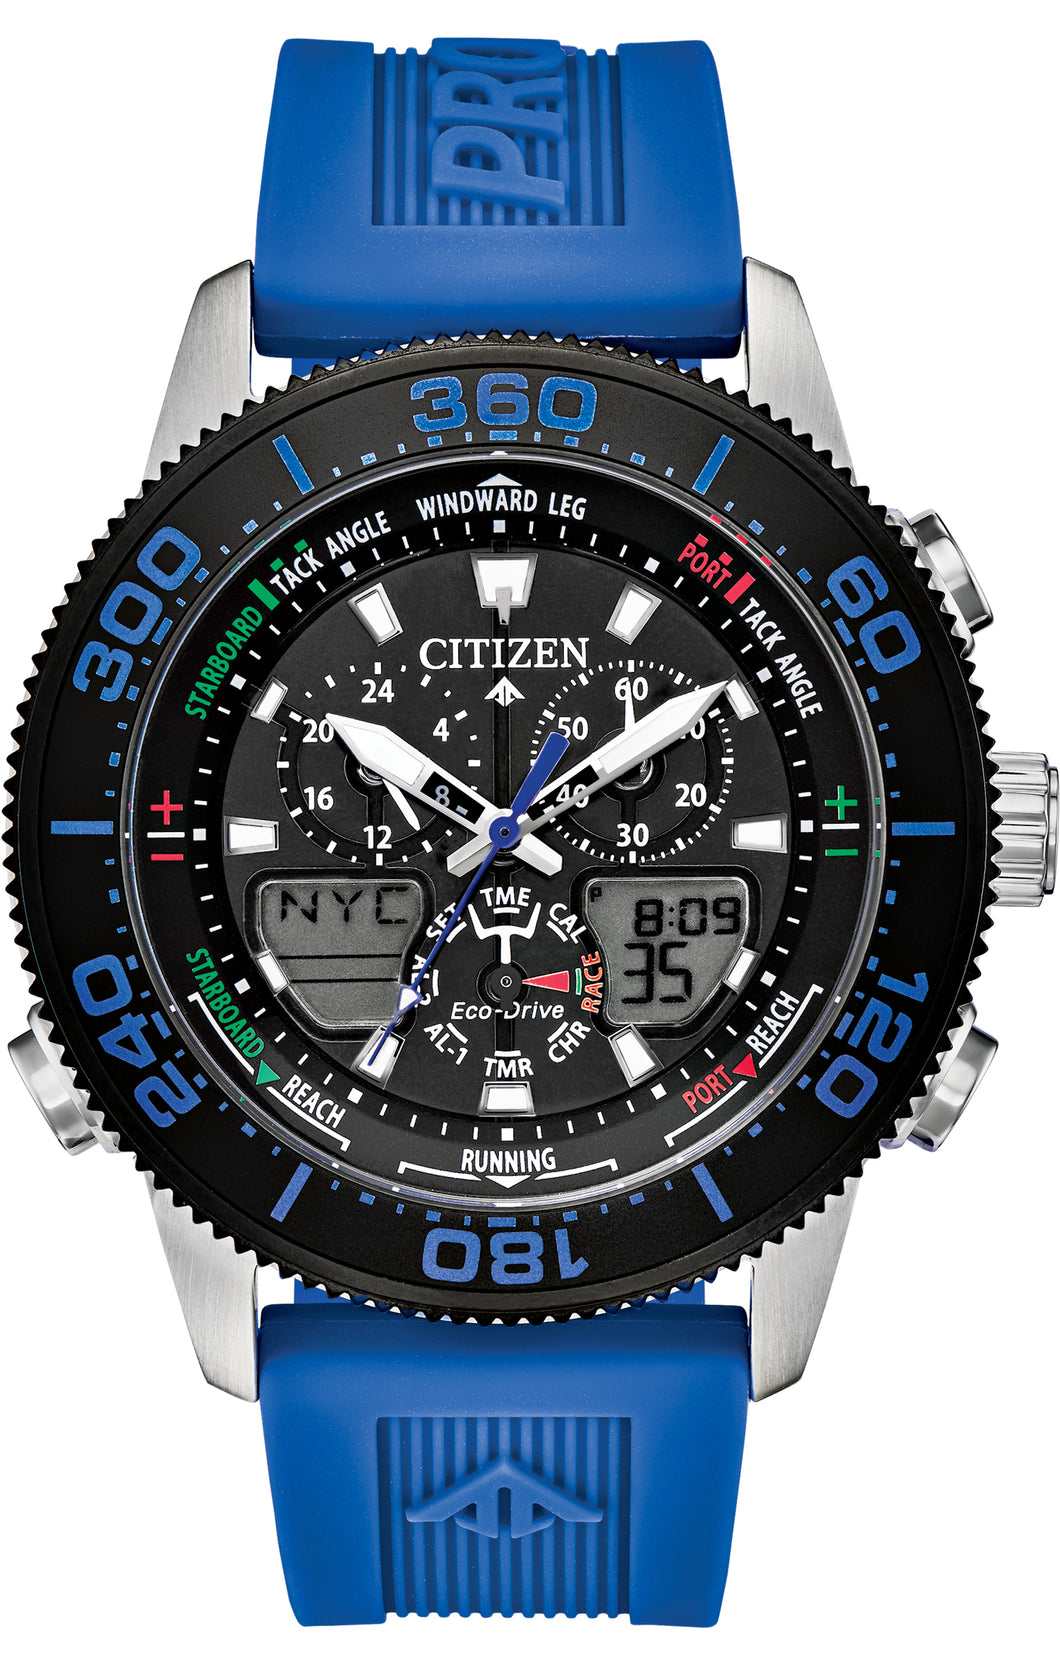 CITIZEN PROMASTER SAILHAWK JR4068-01E